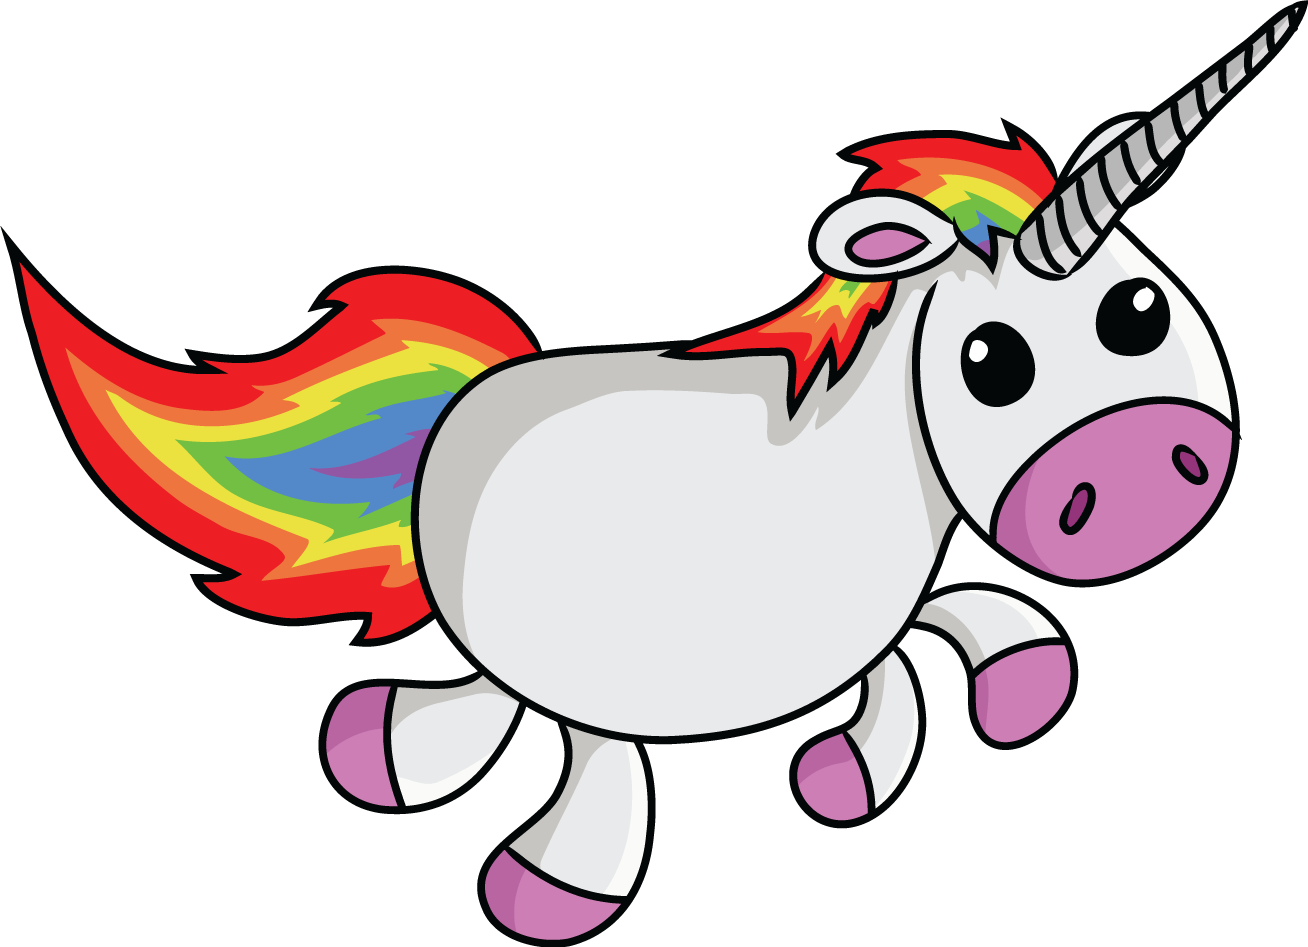 Have X squared box & coin 4 ih Juliet box & coin or other newer box & small coins - cute-unicorn-clipart-unicorn4.png